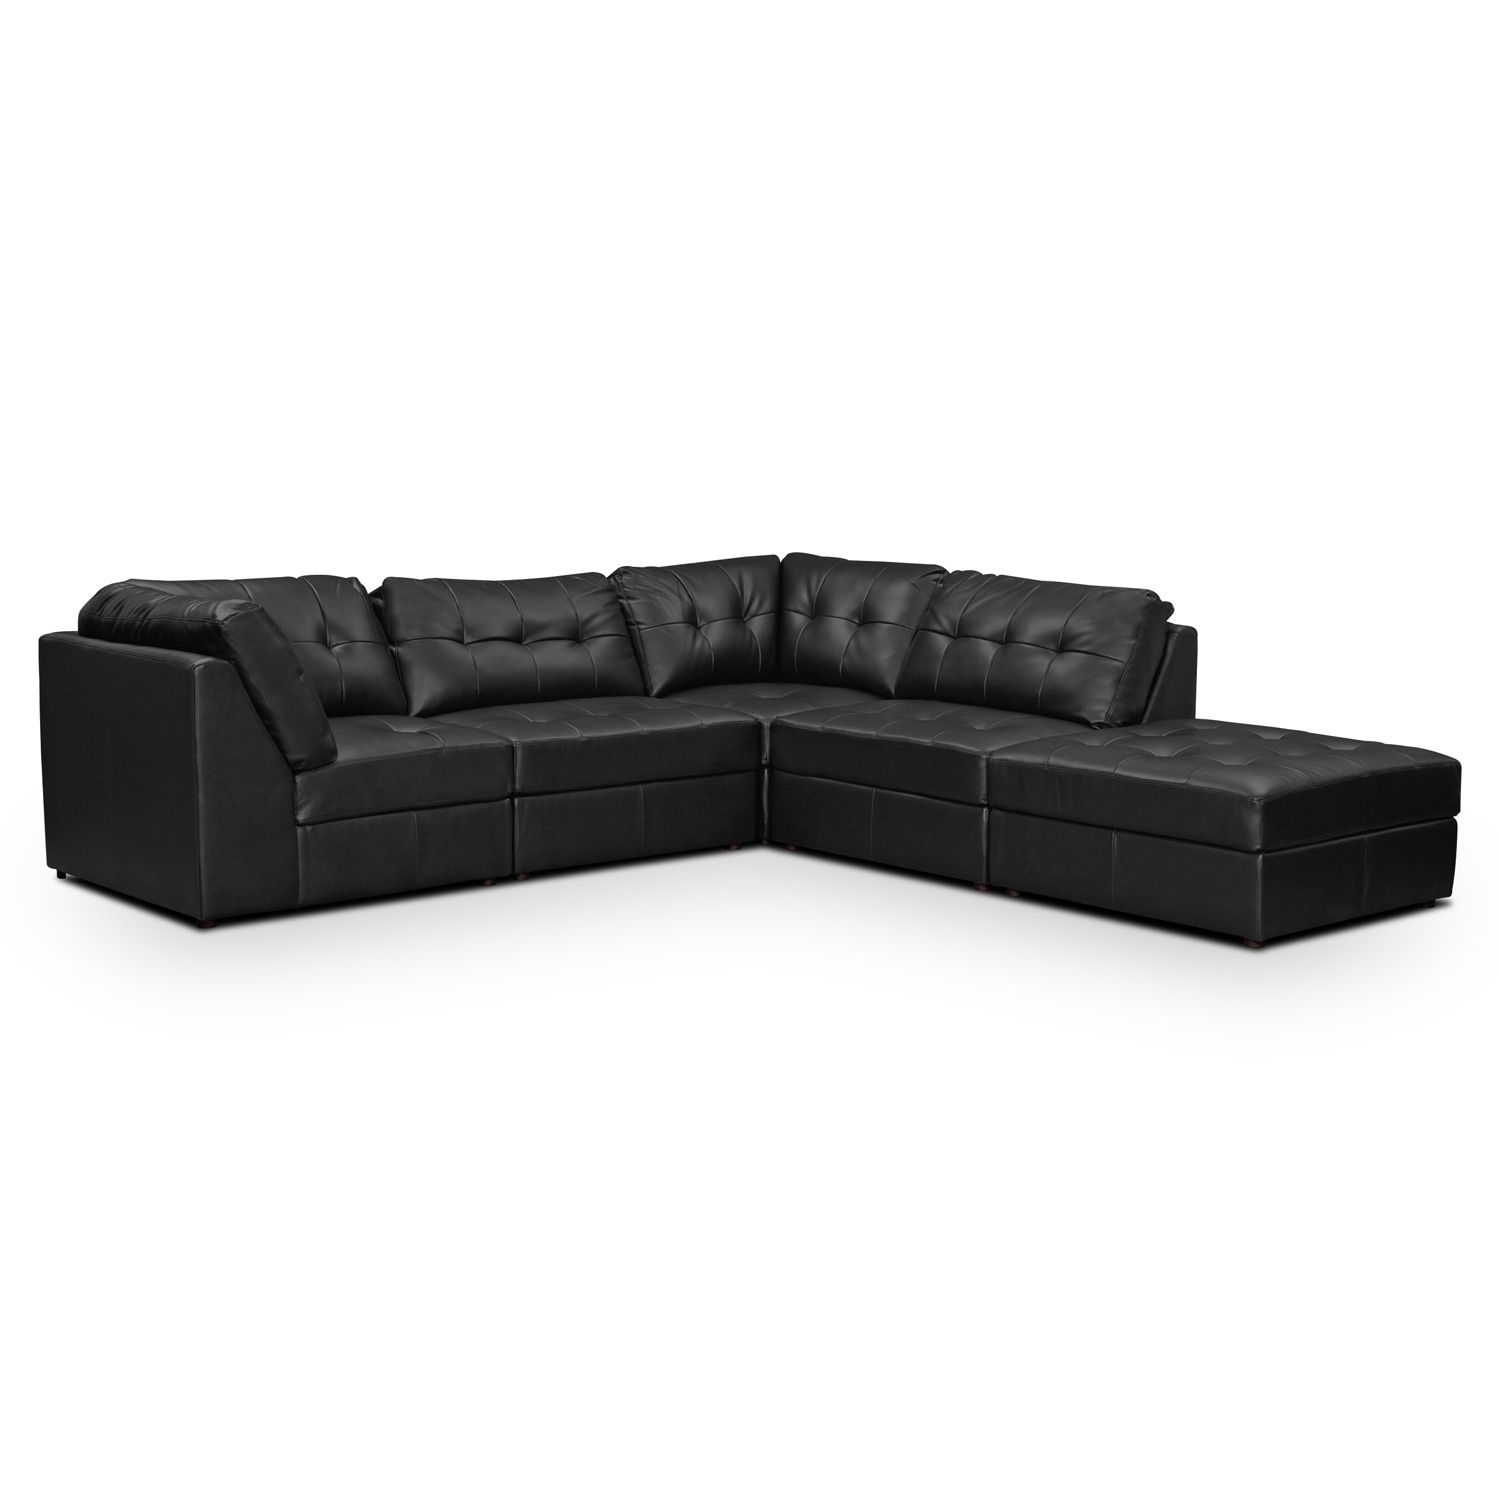 Aventura Leather 5 Pc (Image 4 of 25)